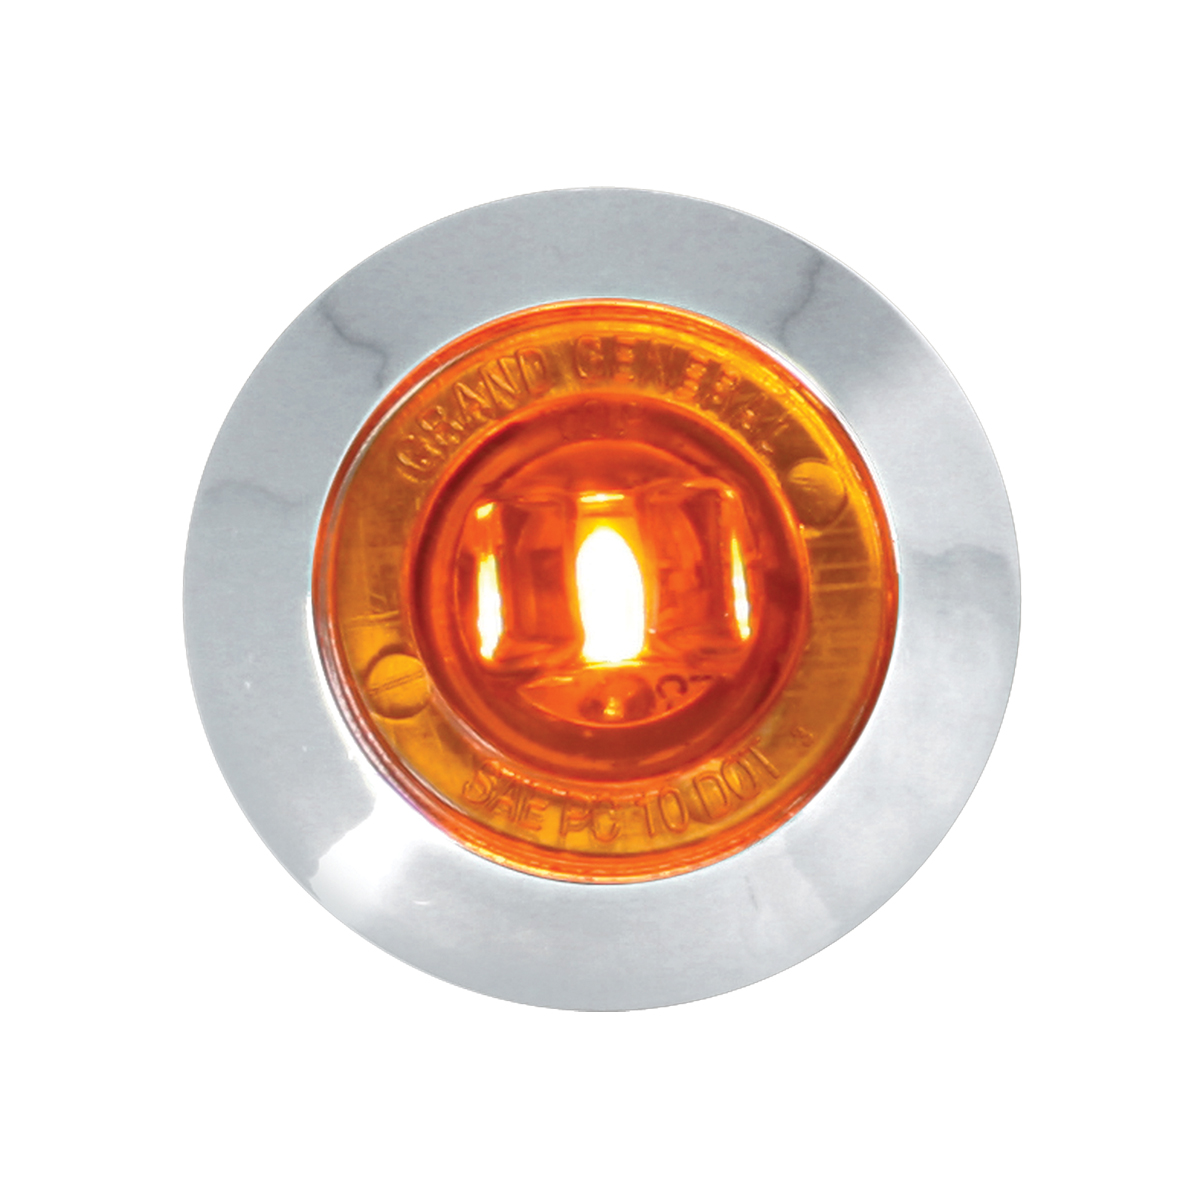 "87060 Amber/Amber 1"" Dia. Mini Push/Screw-in Wide Angle LED Marker Light w/ Chrome Bezel"